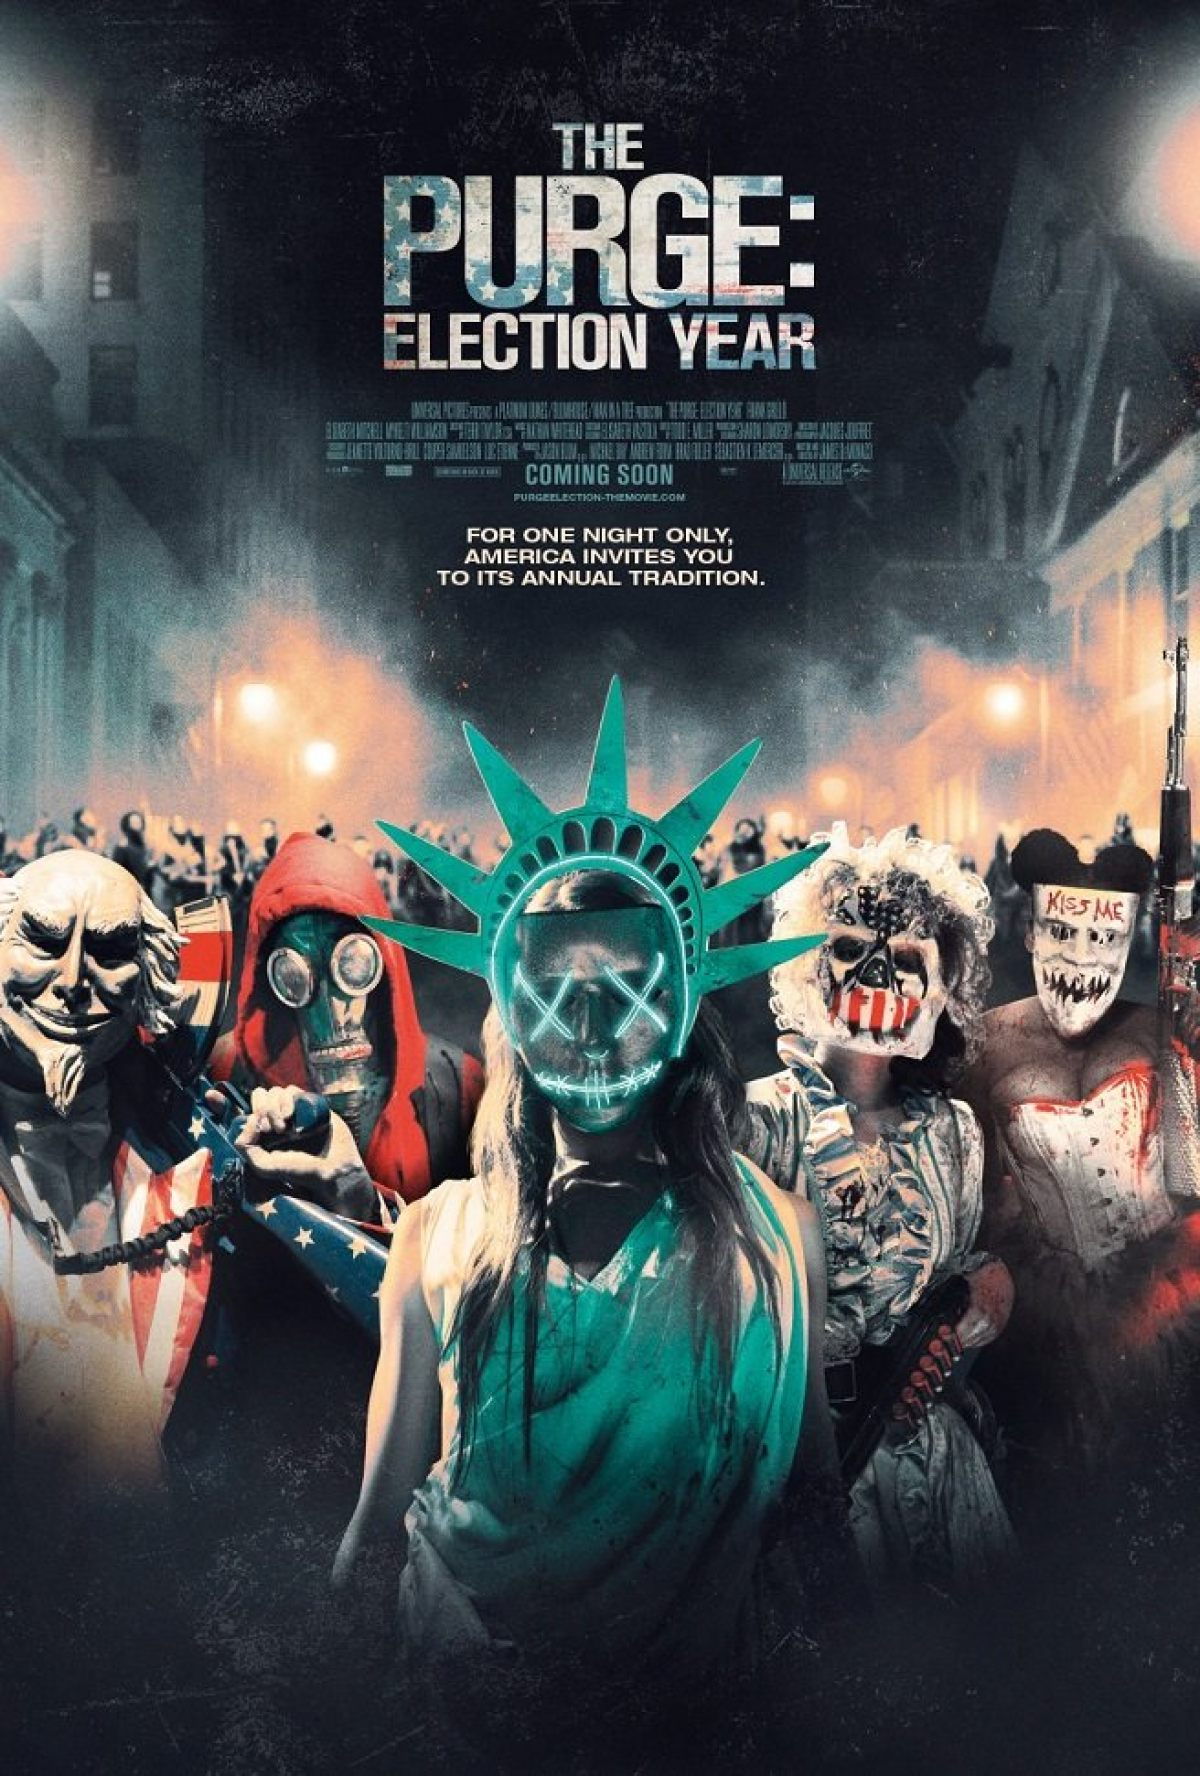 THE PURGE: ELECTION YEAR Finds An Interesting New Approach To ...